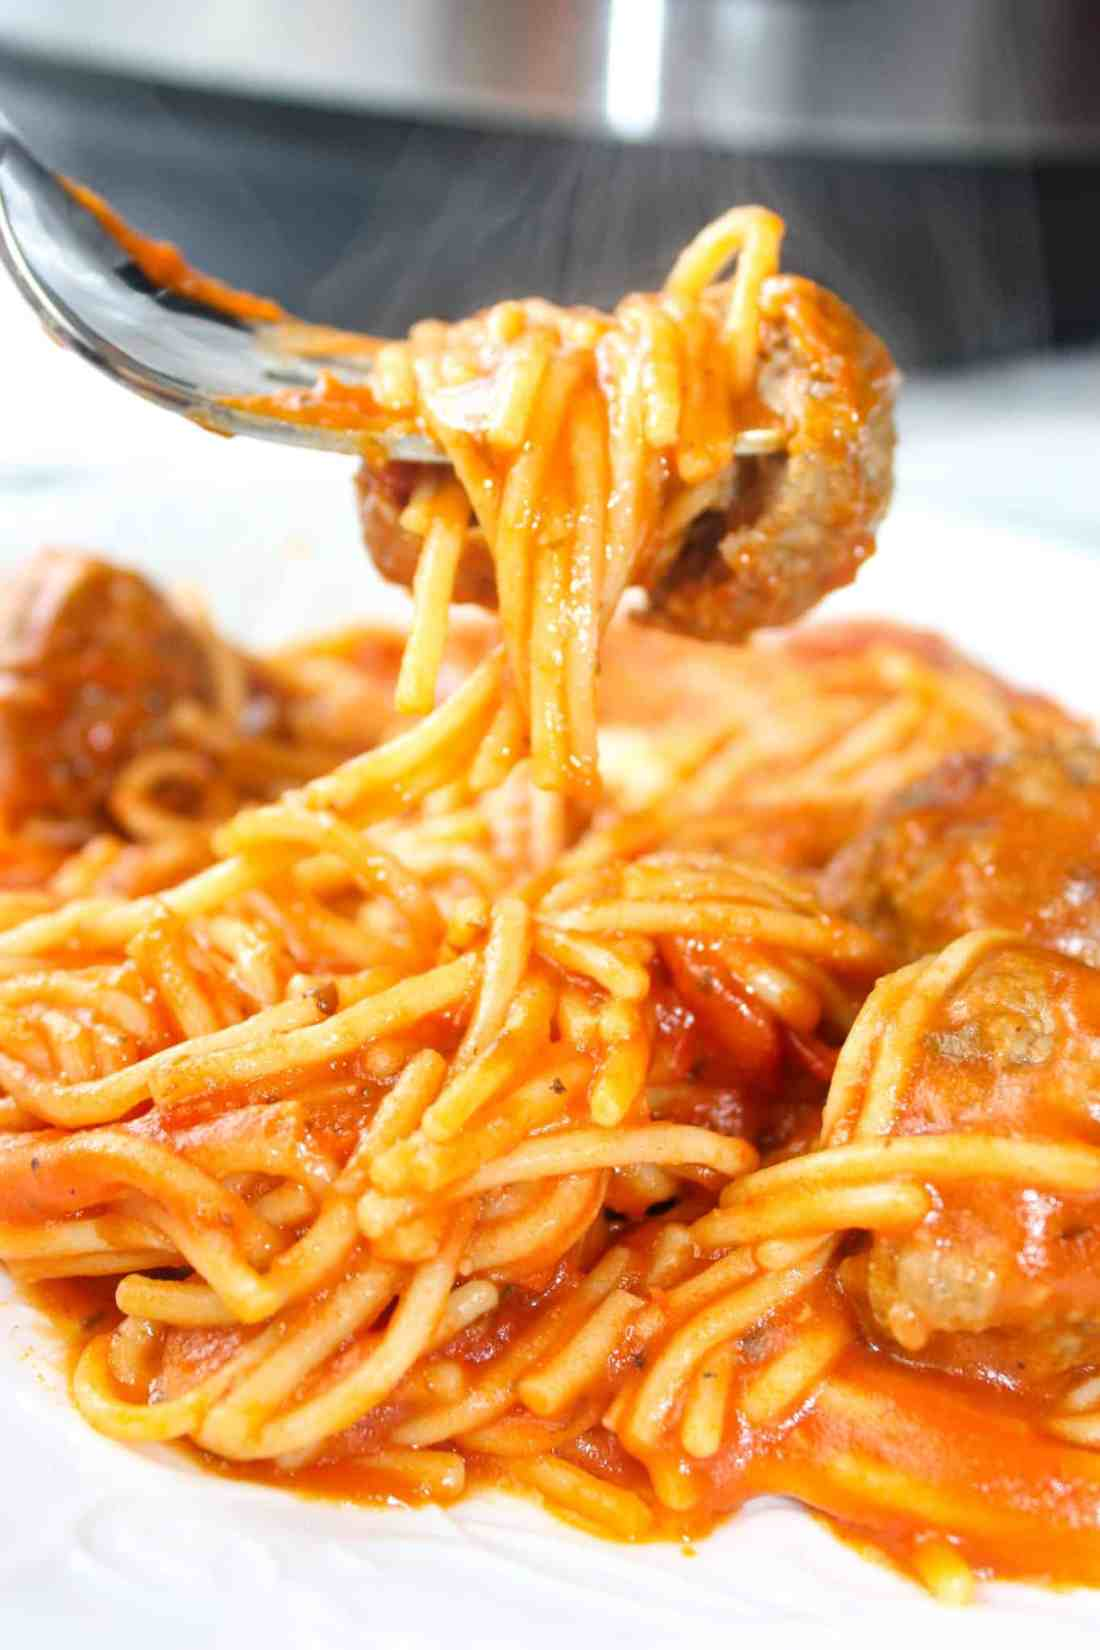 Instant Pot Spaghetti and Meatballs is an easy and delicious pressure cooker pasta recipe.  This family dinner recipe uses gluten free pasta and is loaded with gluten free meatballs and Tomato Basil pasta sauce.